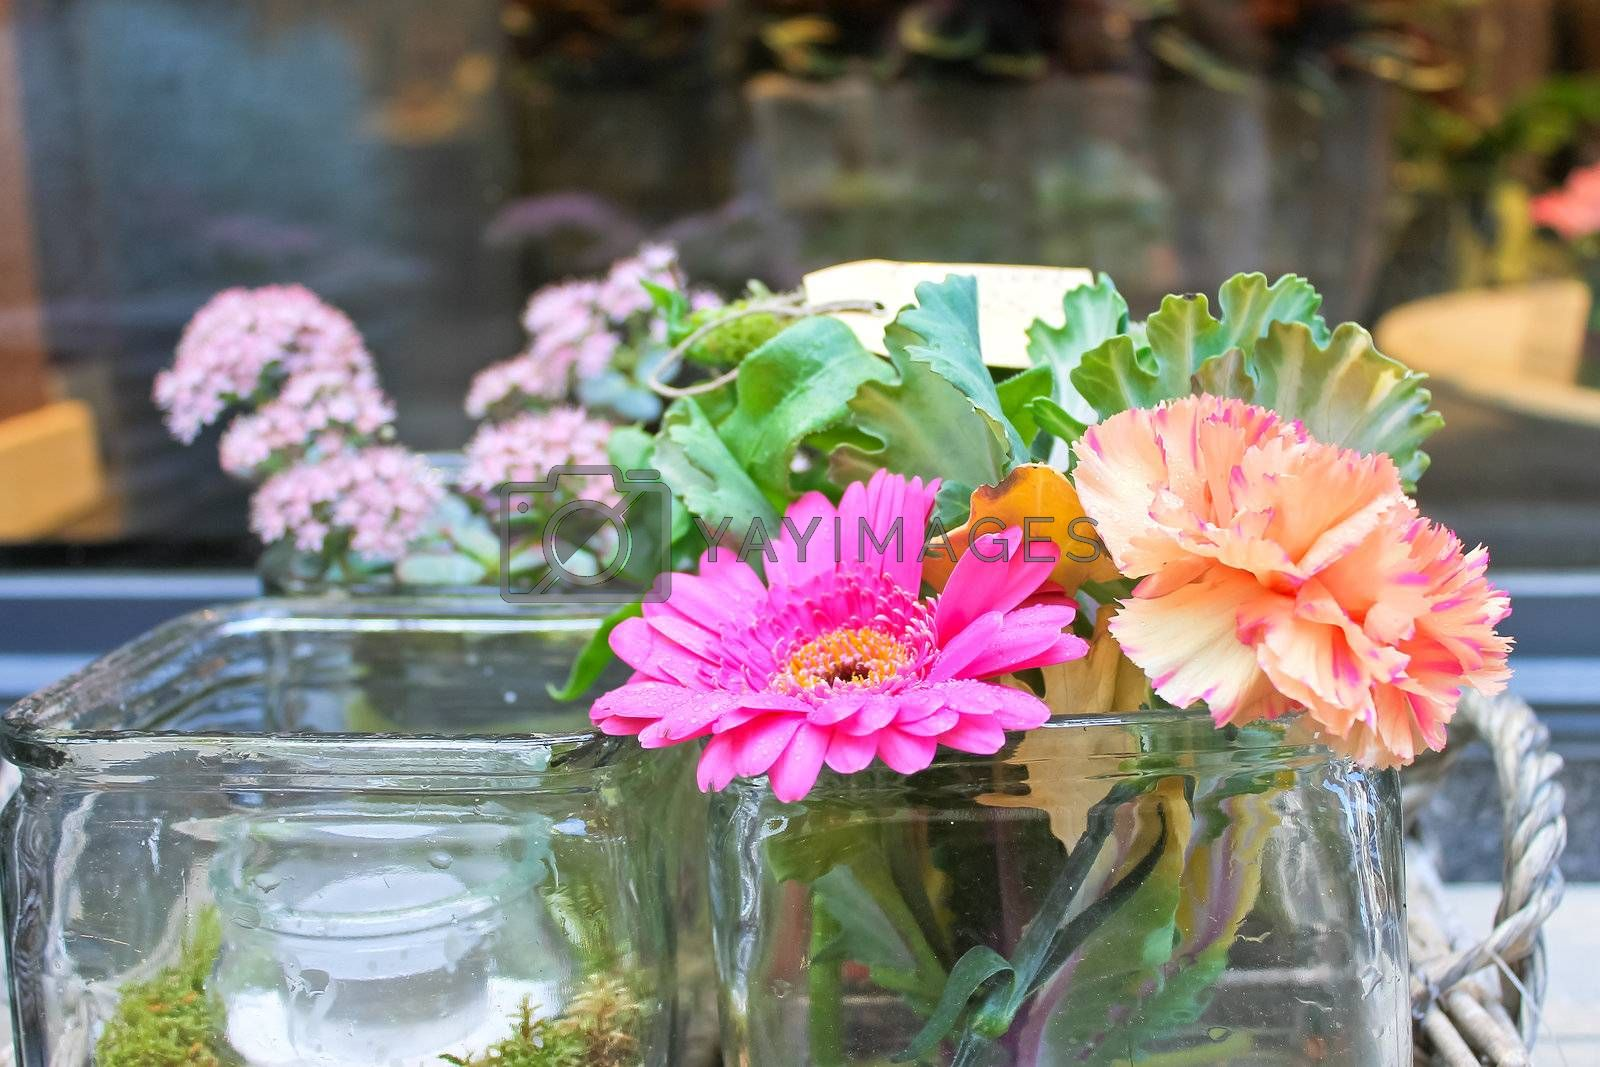 Flowers in a glass vase on the table